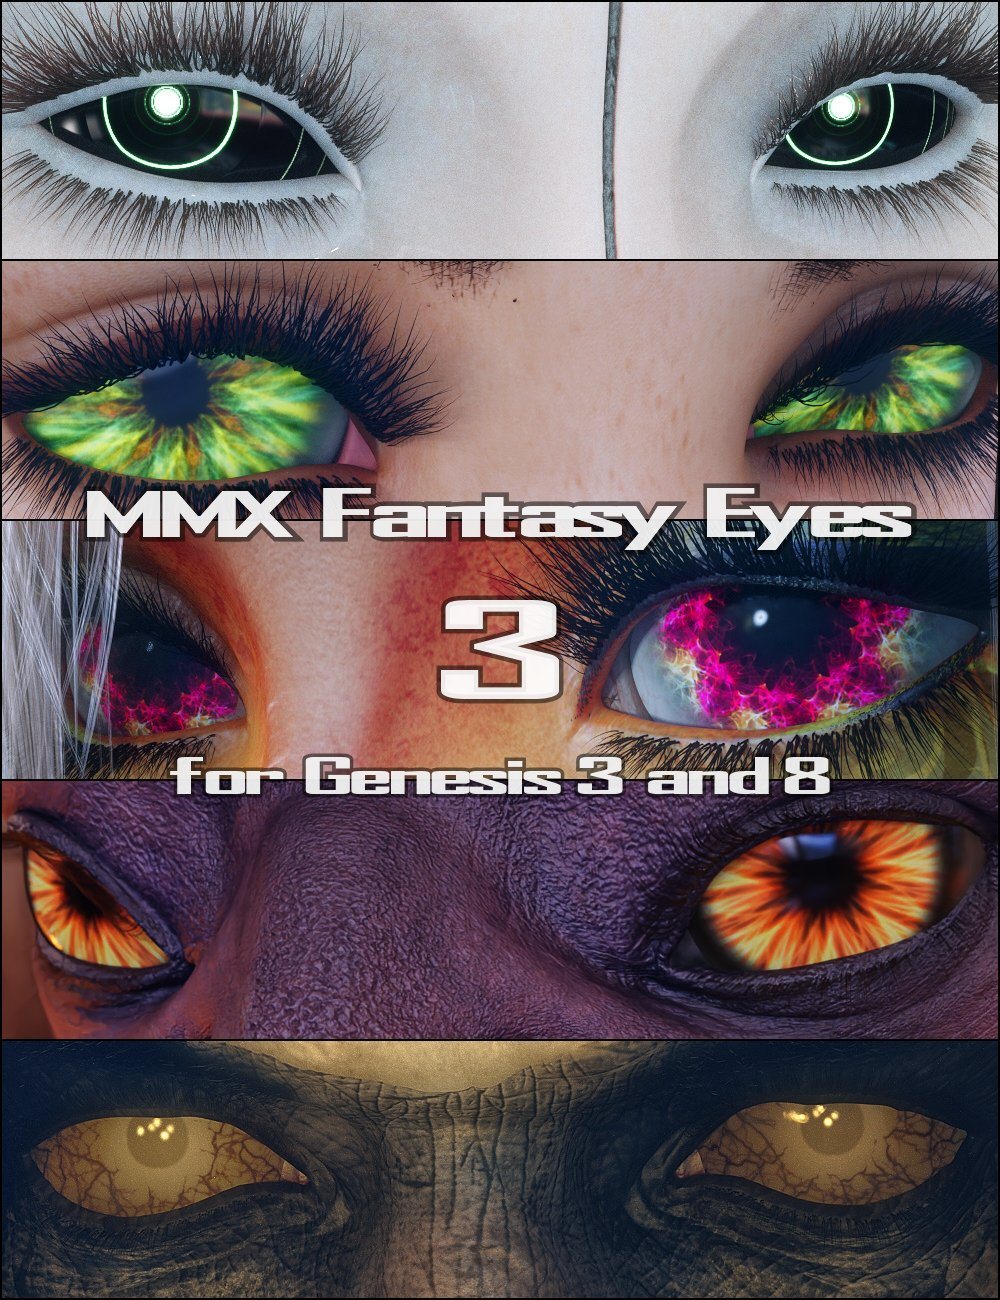 MMX Fantasy Eyes 3 for Genesis 3 and 8 by: Mattymanx, 3D Models by Daz 3D